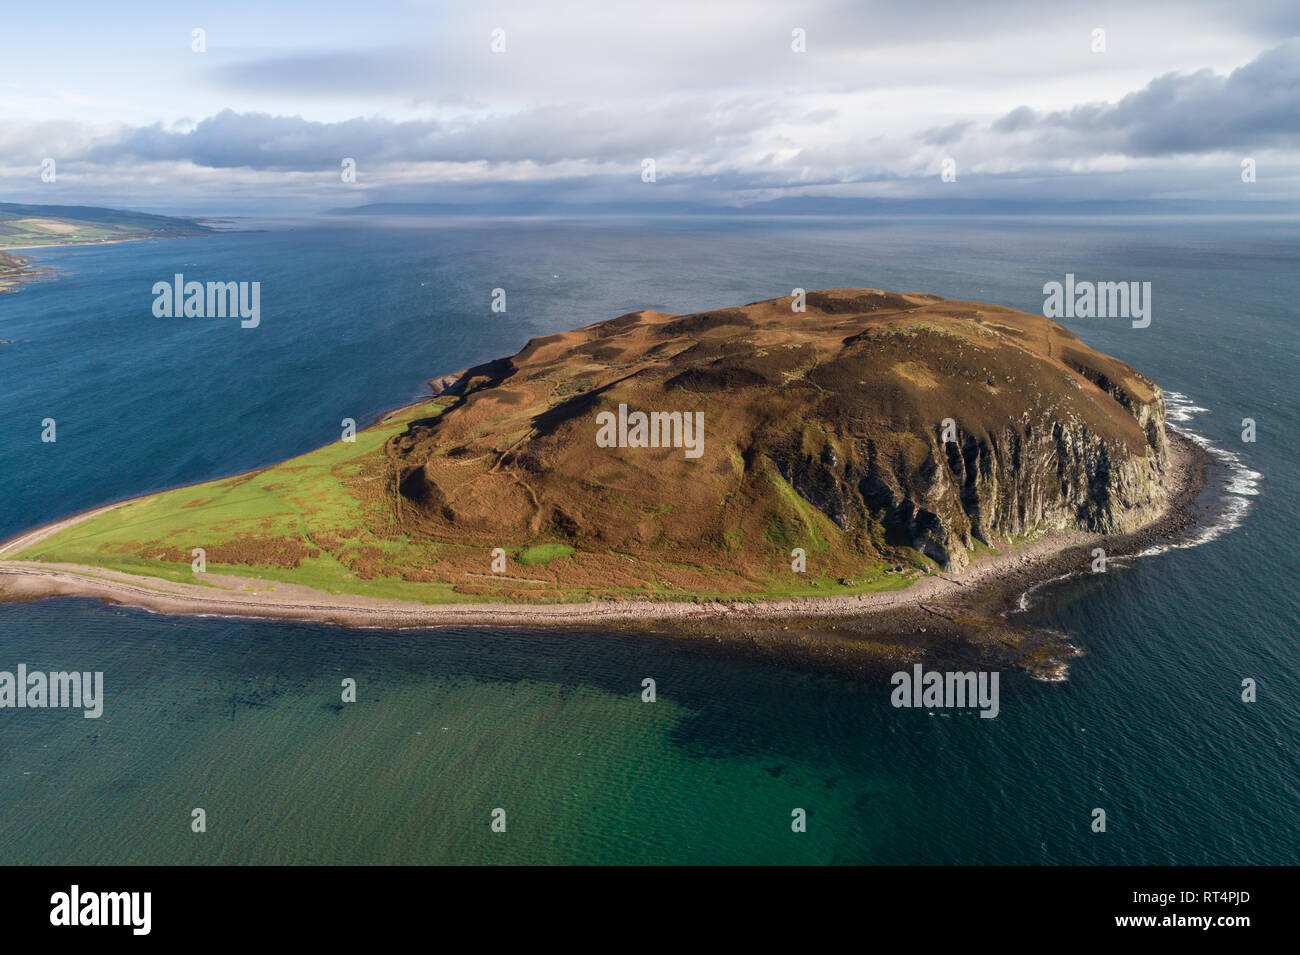 Aerial image showing Davaar Island in dramatic light. - Stock Image